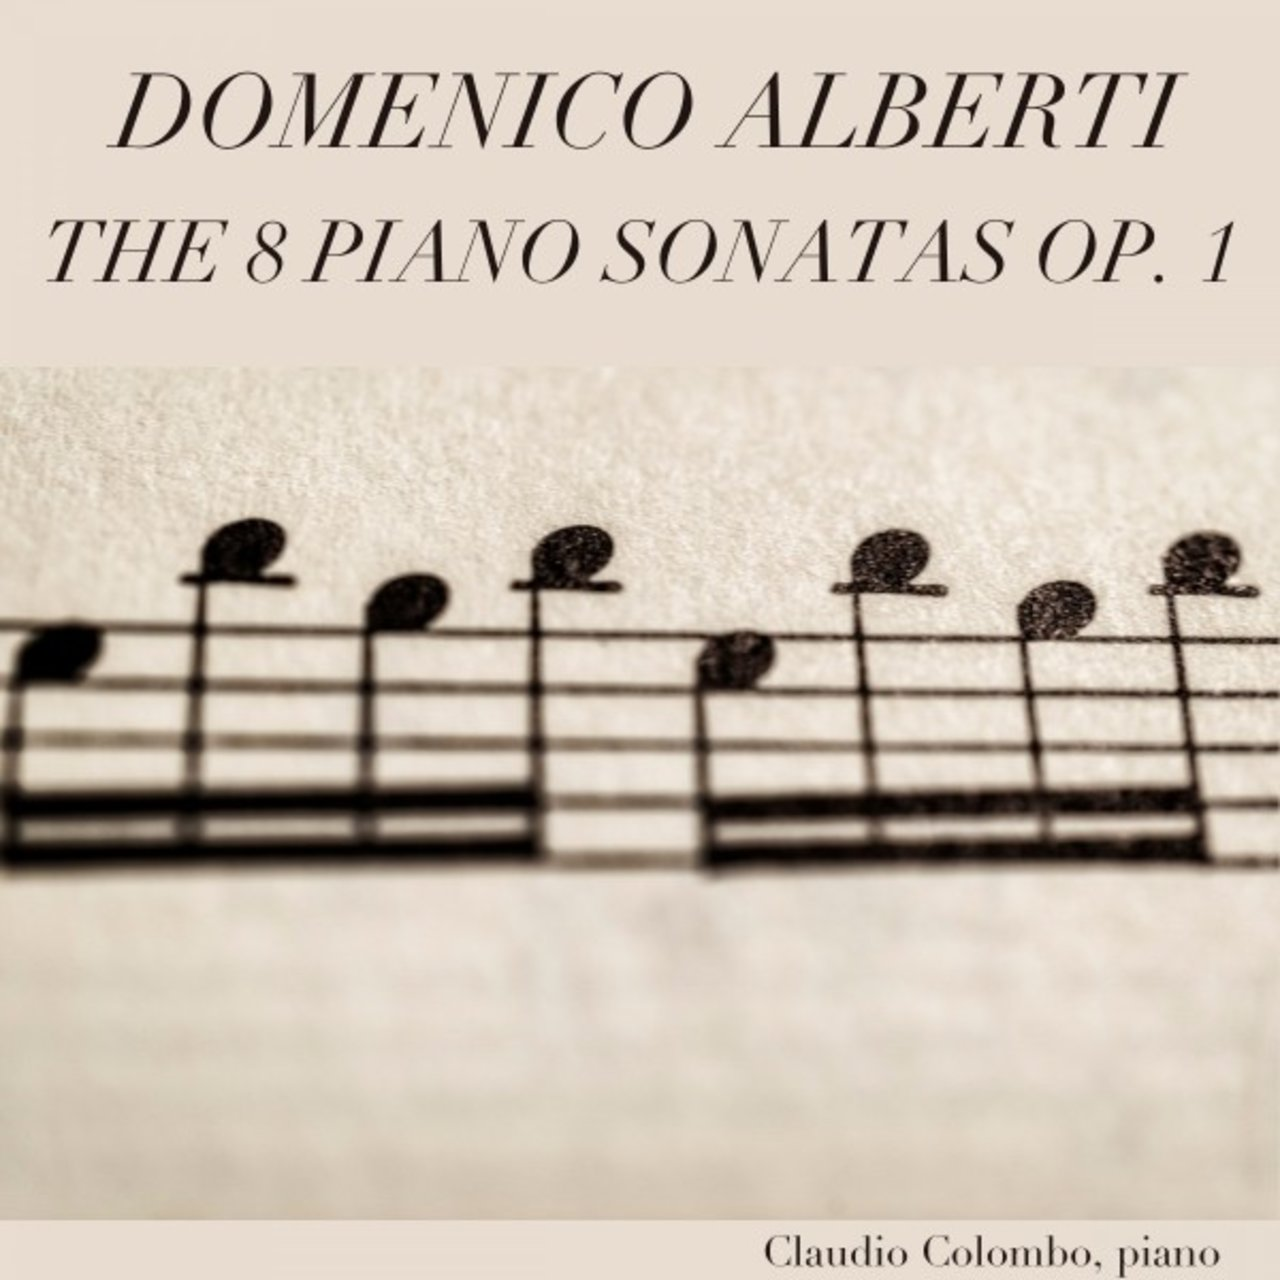 Domenico Alberti: The 8 Piano Sonatas, Op. 1